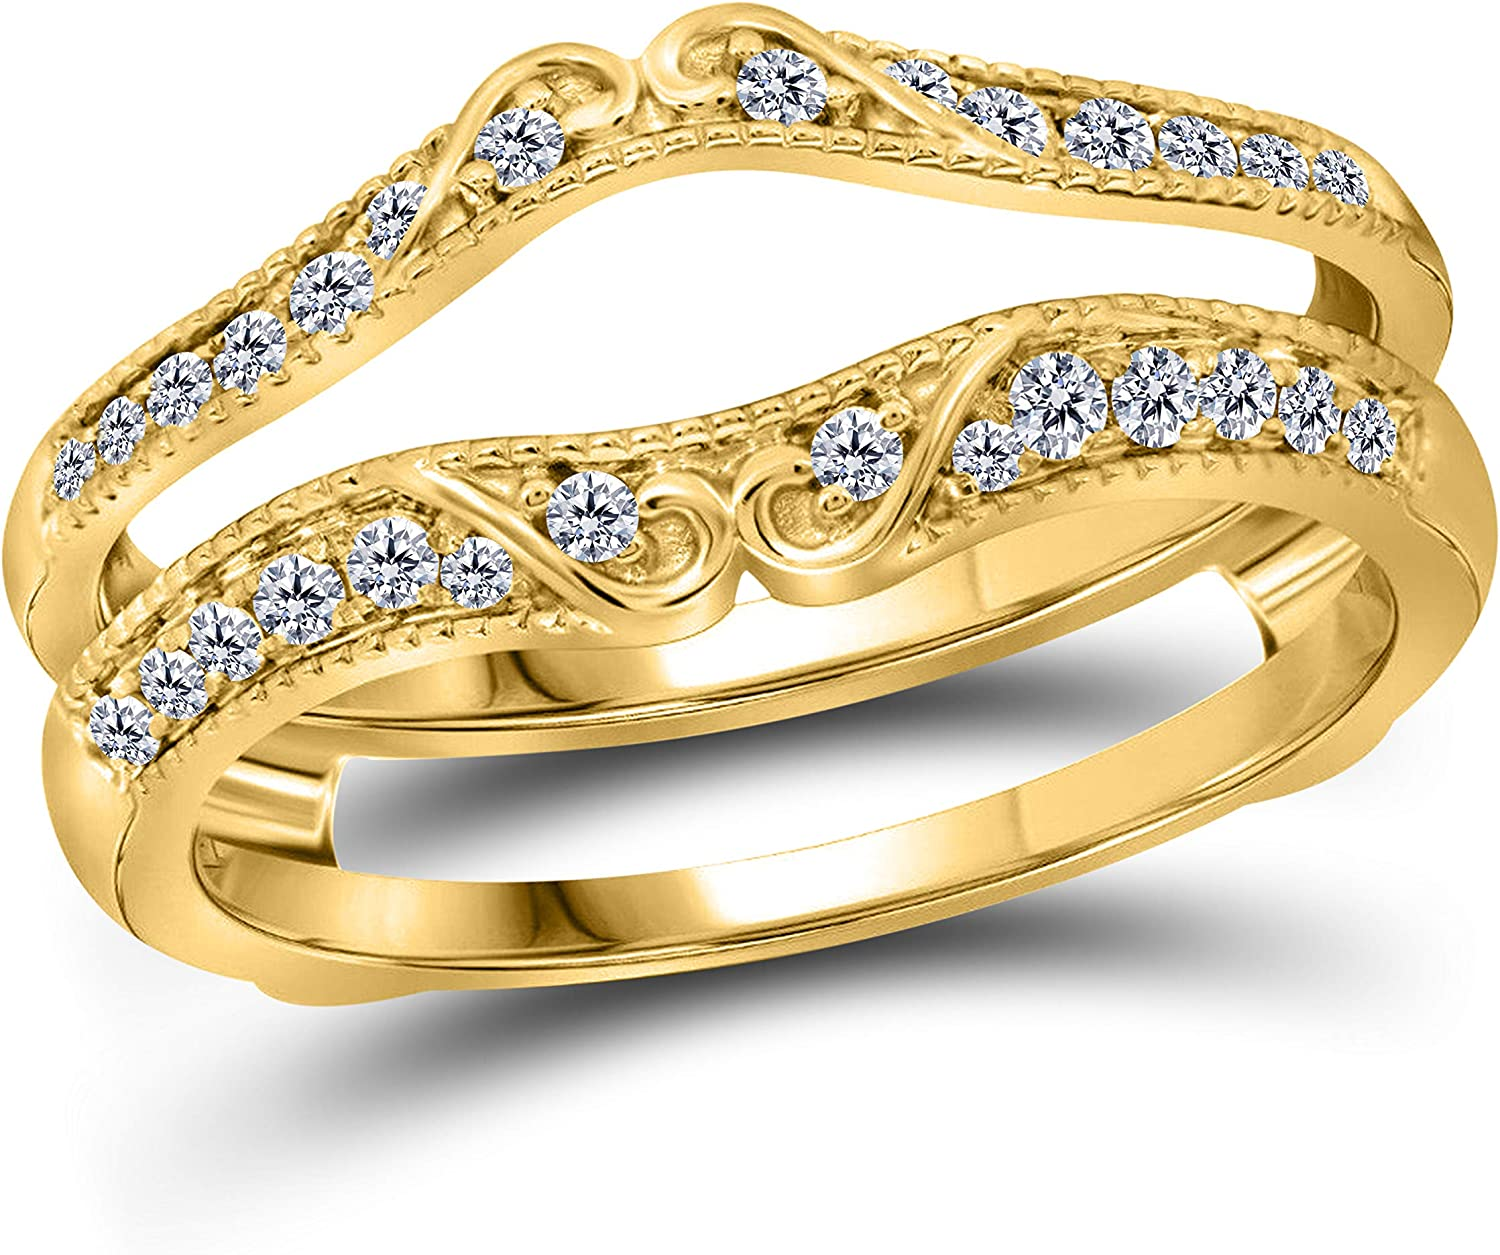 Max 72% OFF 14k White Or Yellow Ranking TOP5 Rose Gold Over Tw Sterling 1 4 Ct Silver Cub